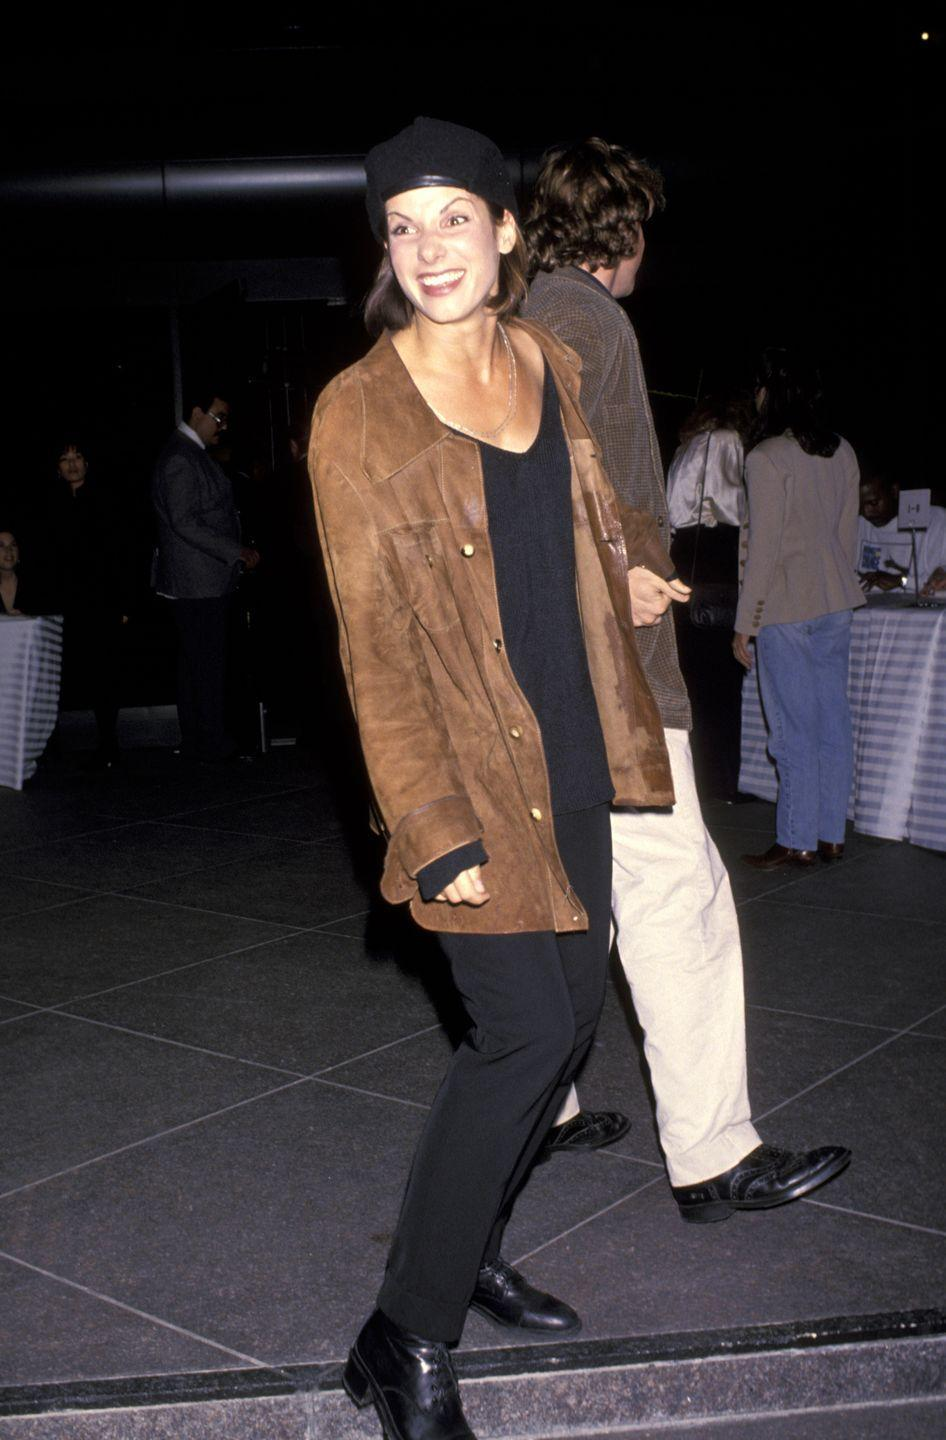 <p>Apparently, brown suede jackets and black berets were officially A Thing in the '80s and '90s. Sandra Bullock, on the heels of her <em>Speed</em> breakout, is a testament to the trend's prominence.</p>